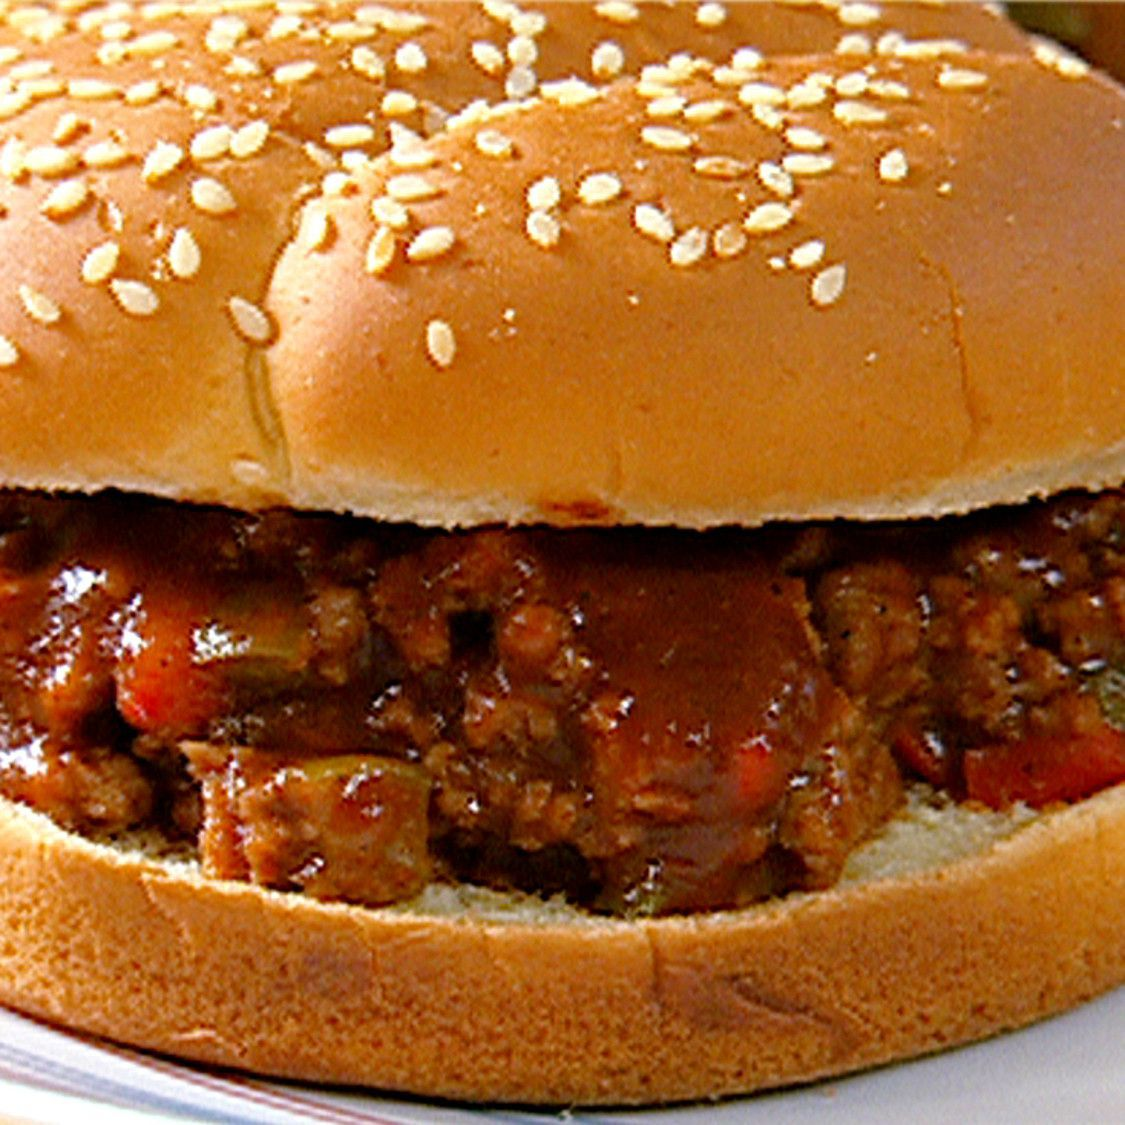 Spenser's Sloppy Joes #homemadesloppyjoes Spenser's Sloppy Joes by The Neelys #homemadesloppyjoes